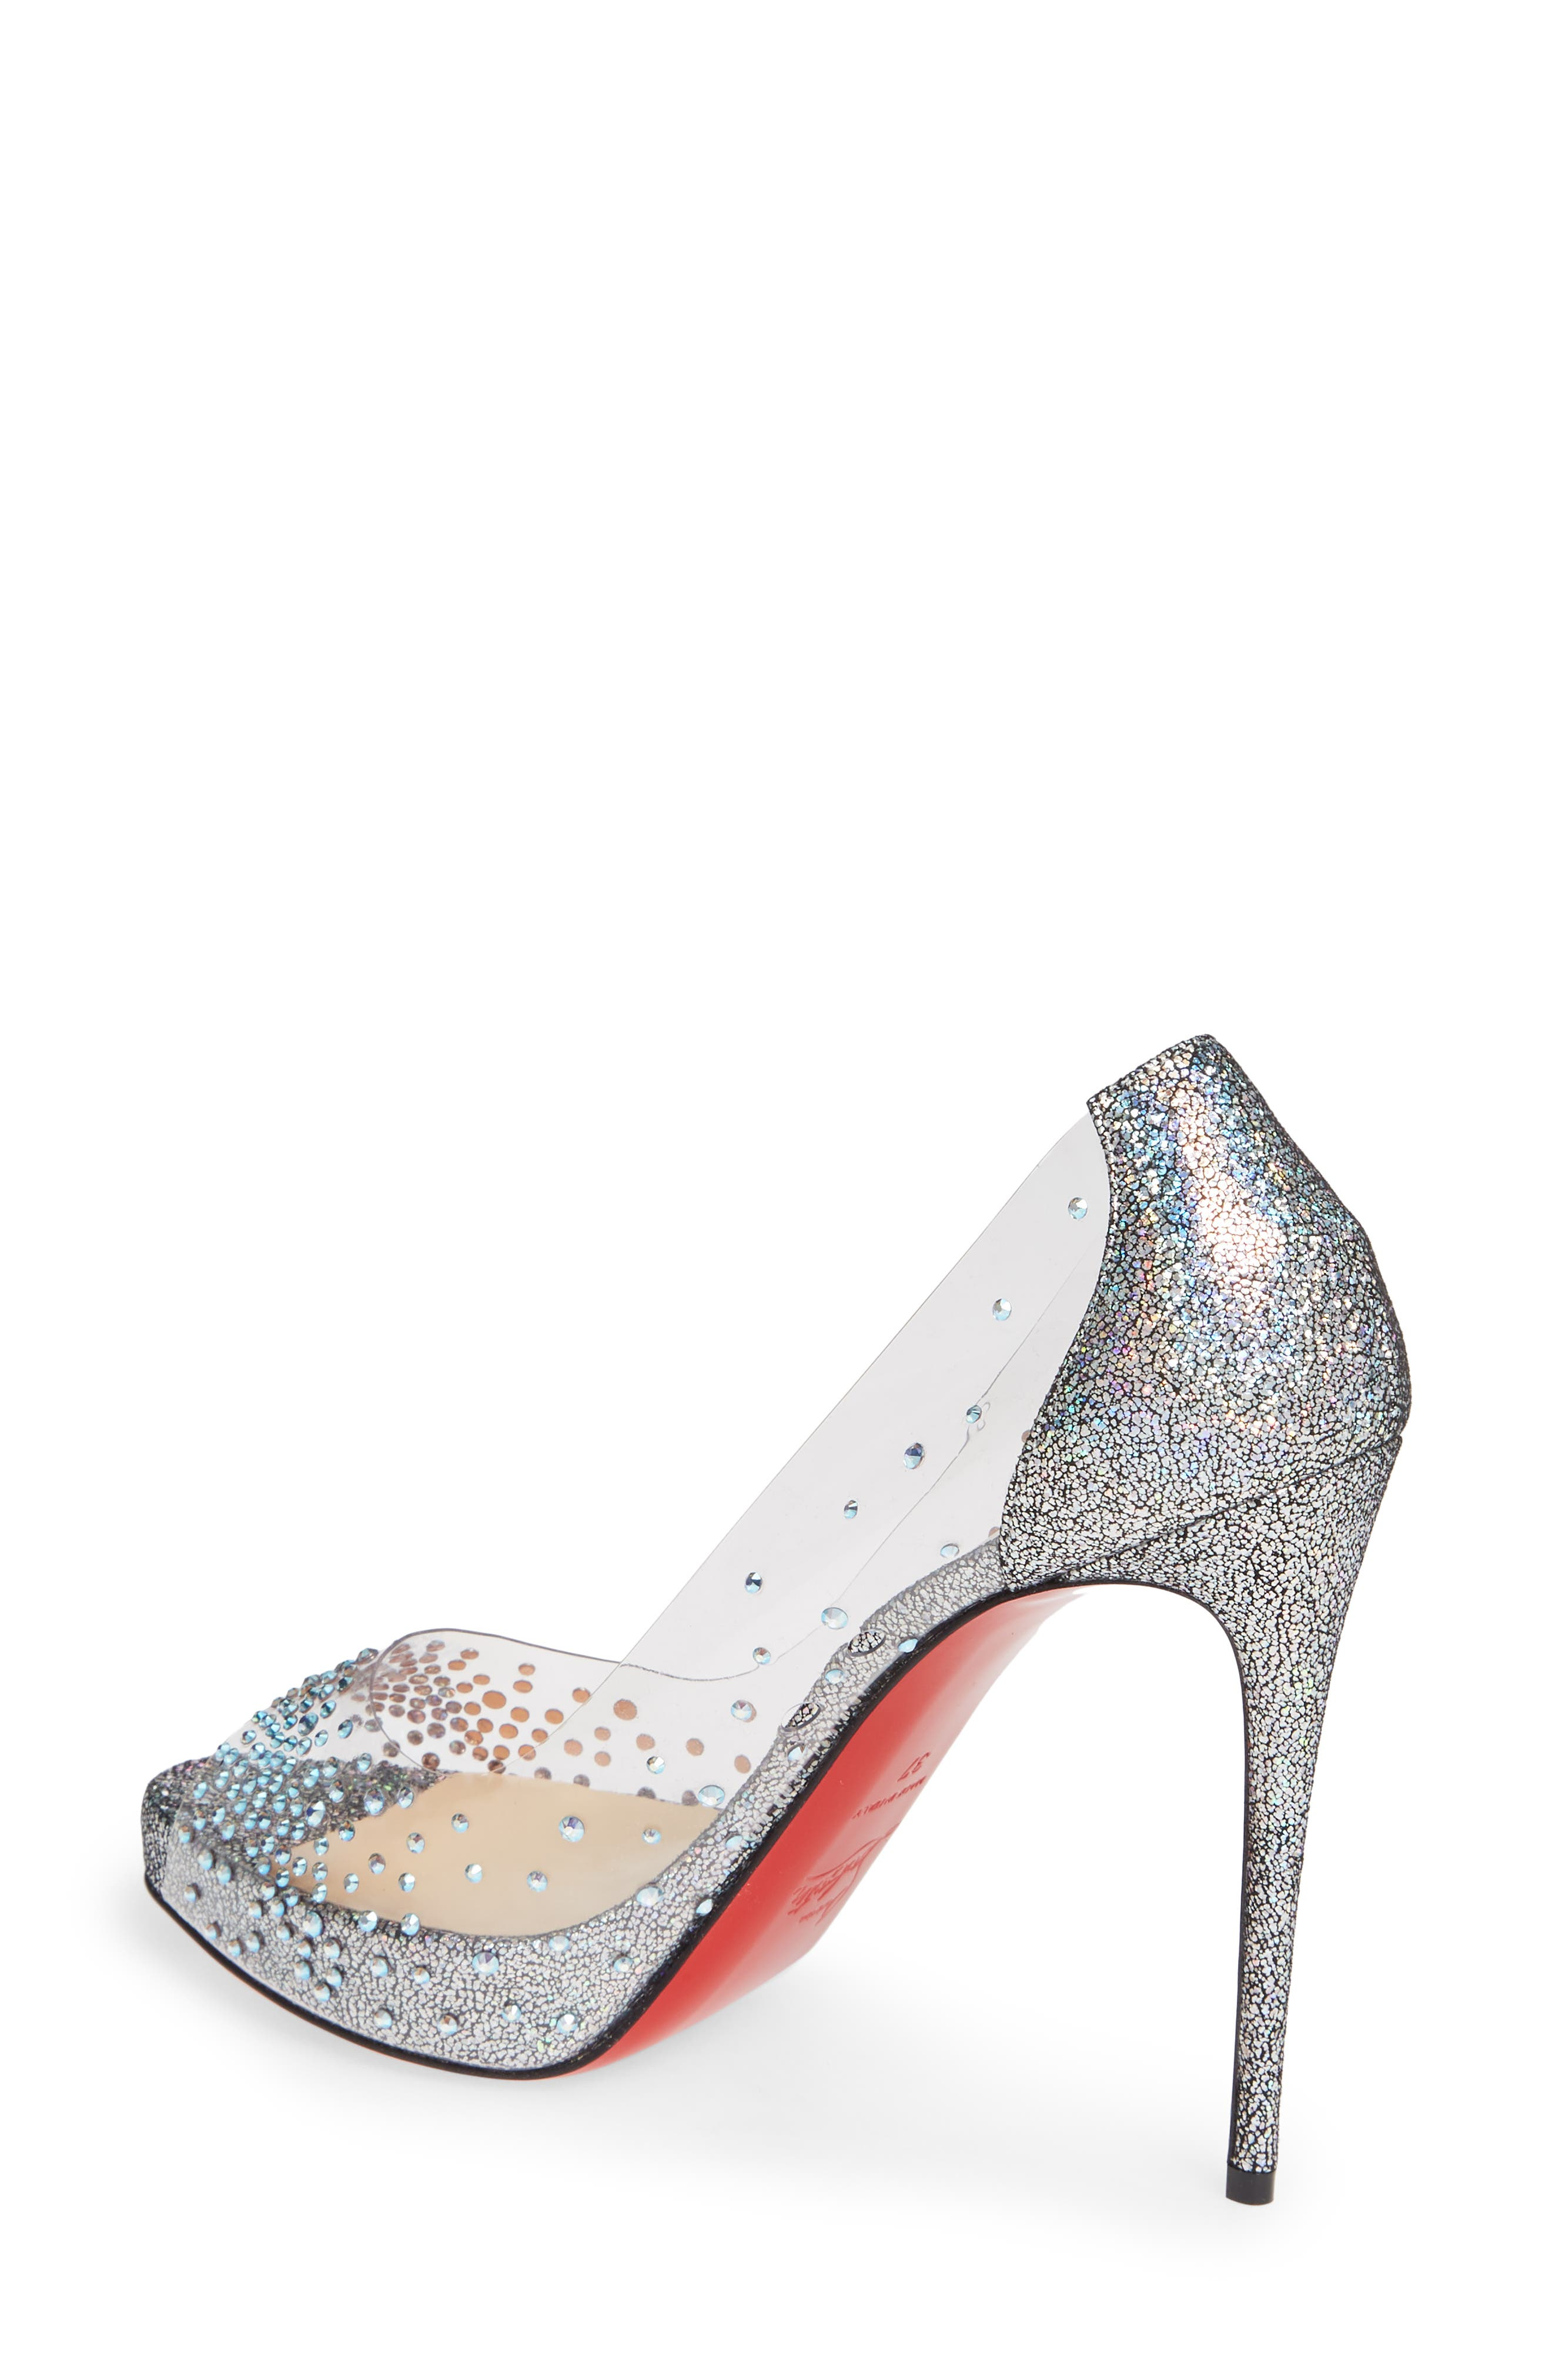 CHRISTIAN LOUBOUTIN, Very Strass Embellished Peep Toe Pump, Alternate thumbnail 2, color, SILVER